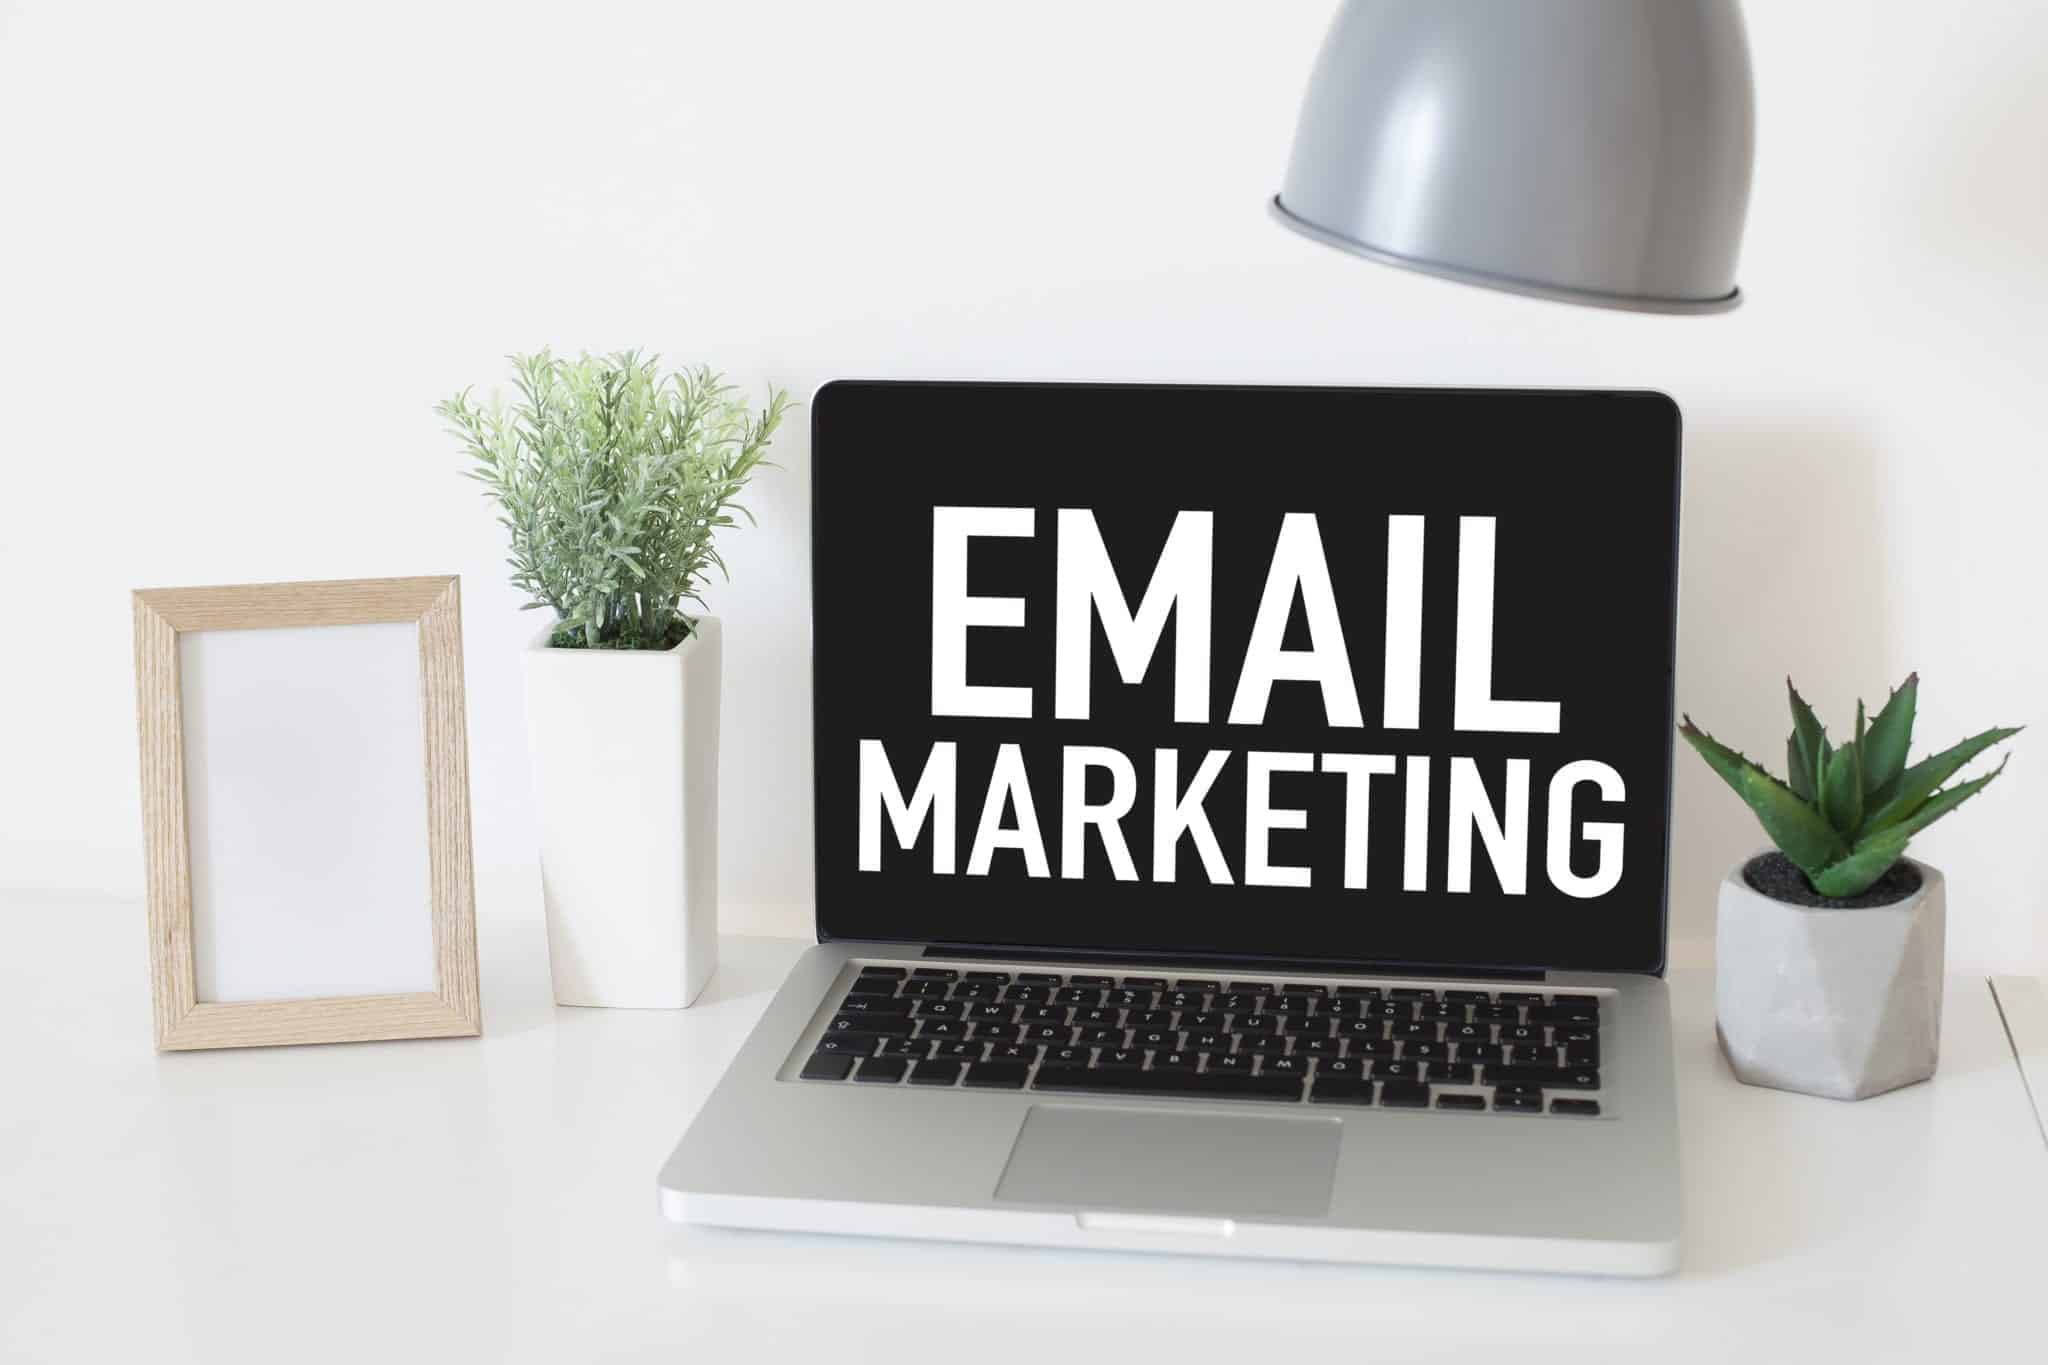 Increase conversions in your email marketing with our top tips.